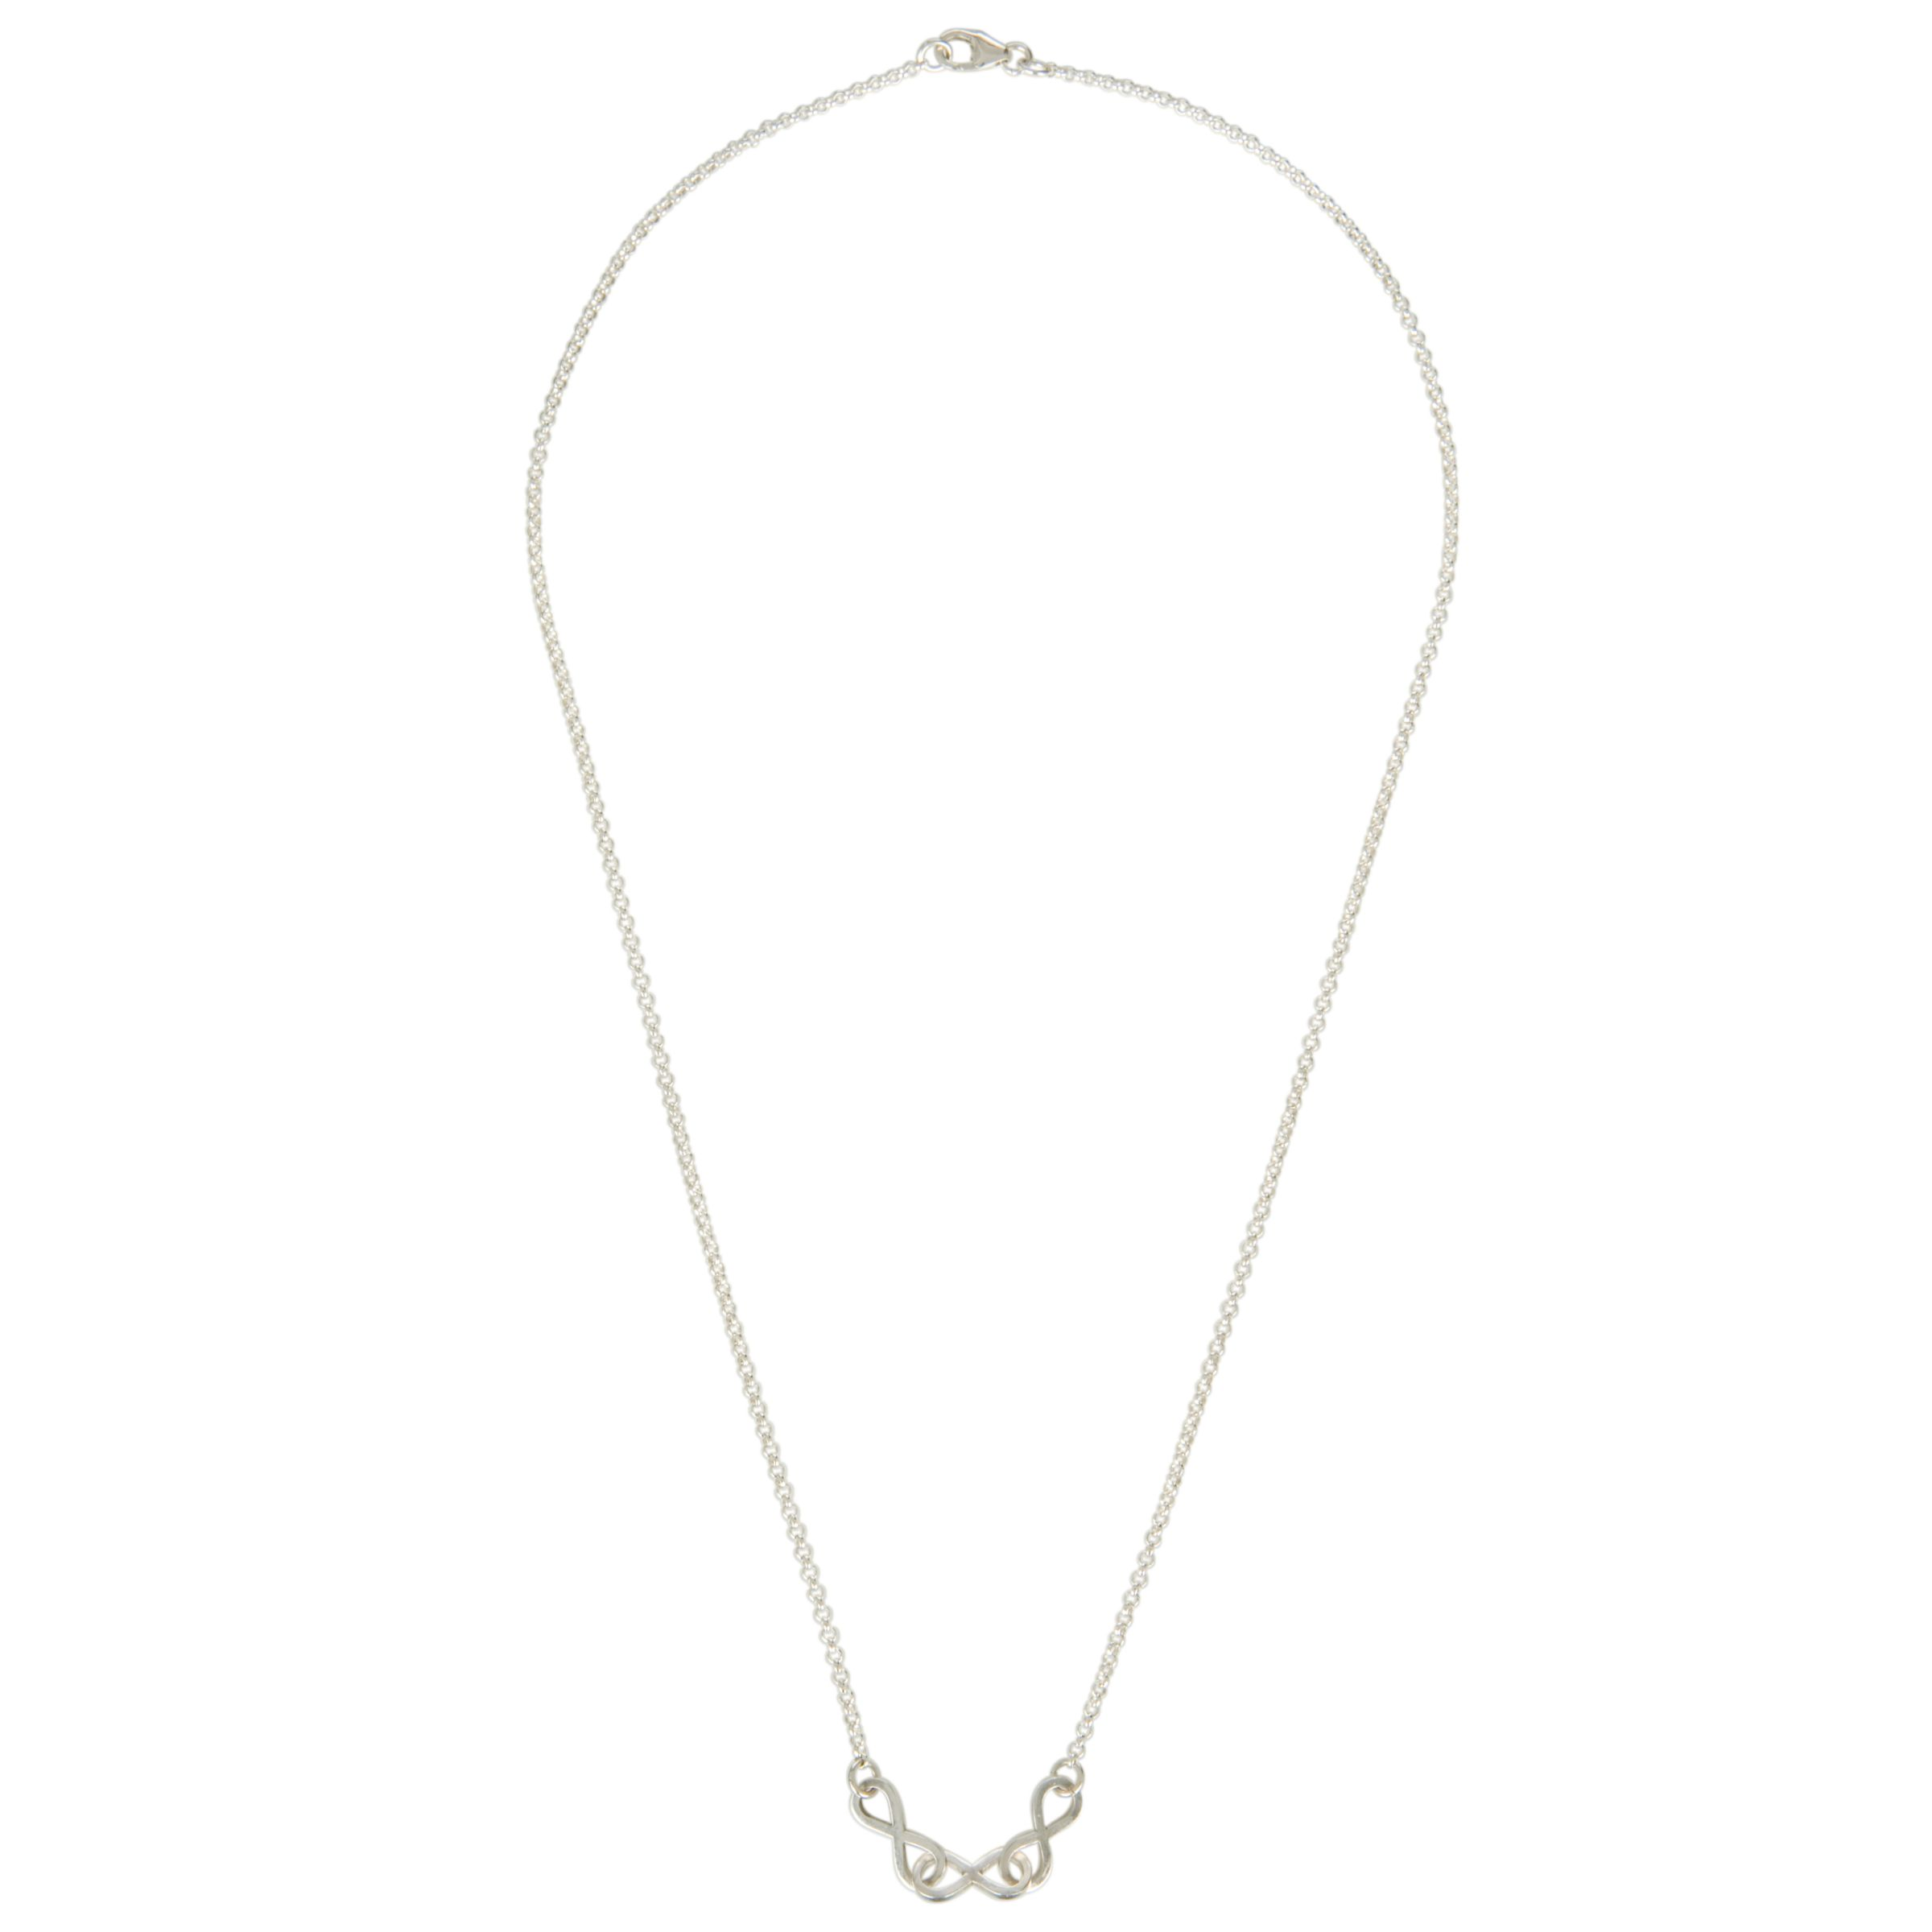 Renaissance Life Petite Eternity Necklace, Silver